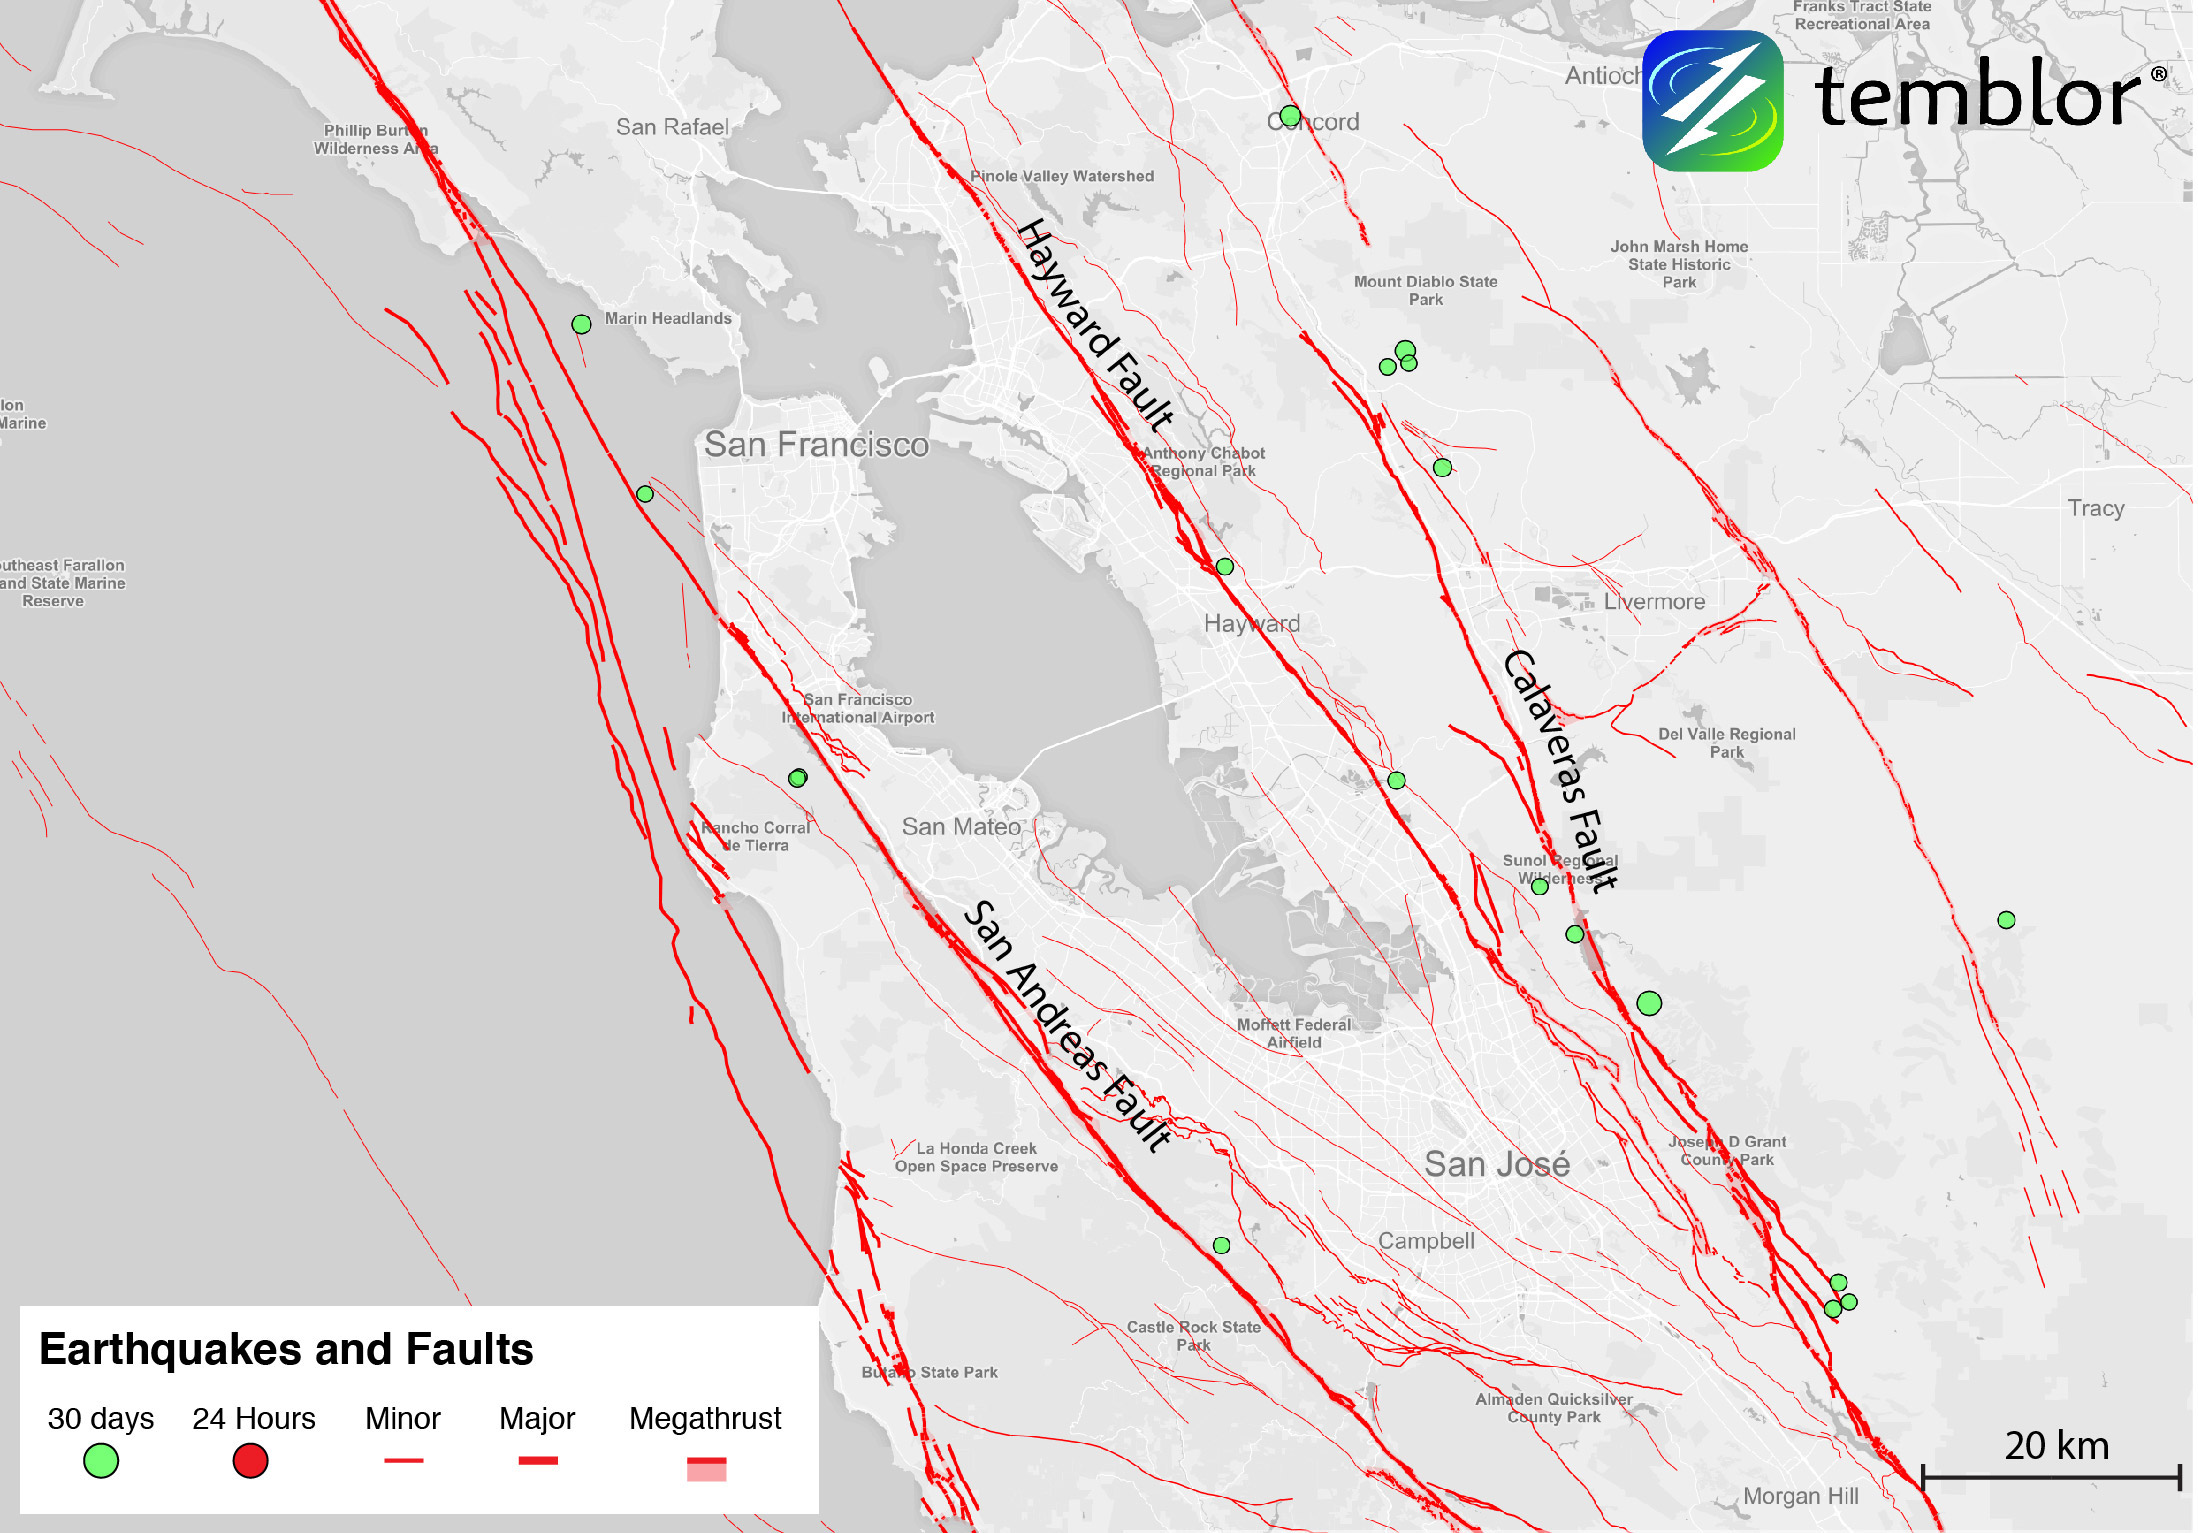 Bay Area Earthquake Fault Map – An earthquake is a process of the earth's surface fluctuations.